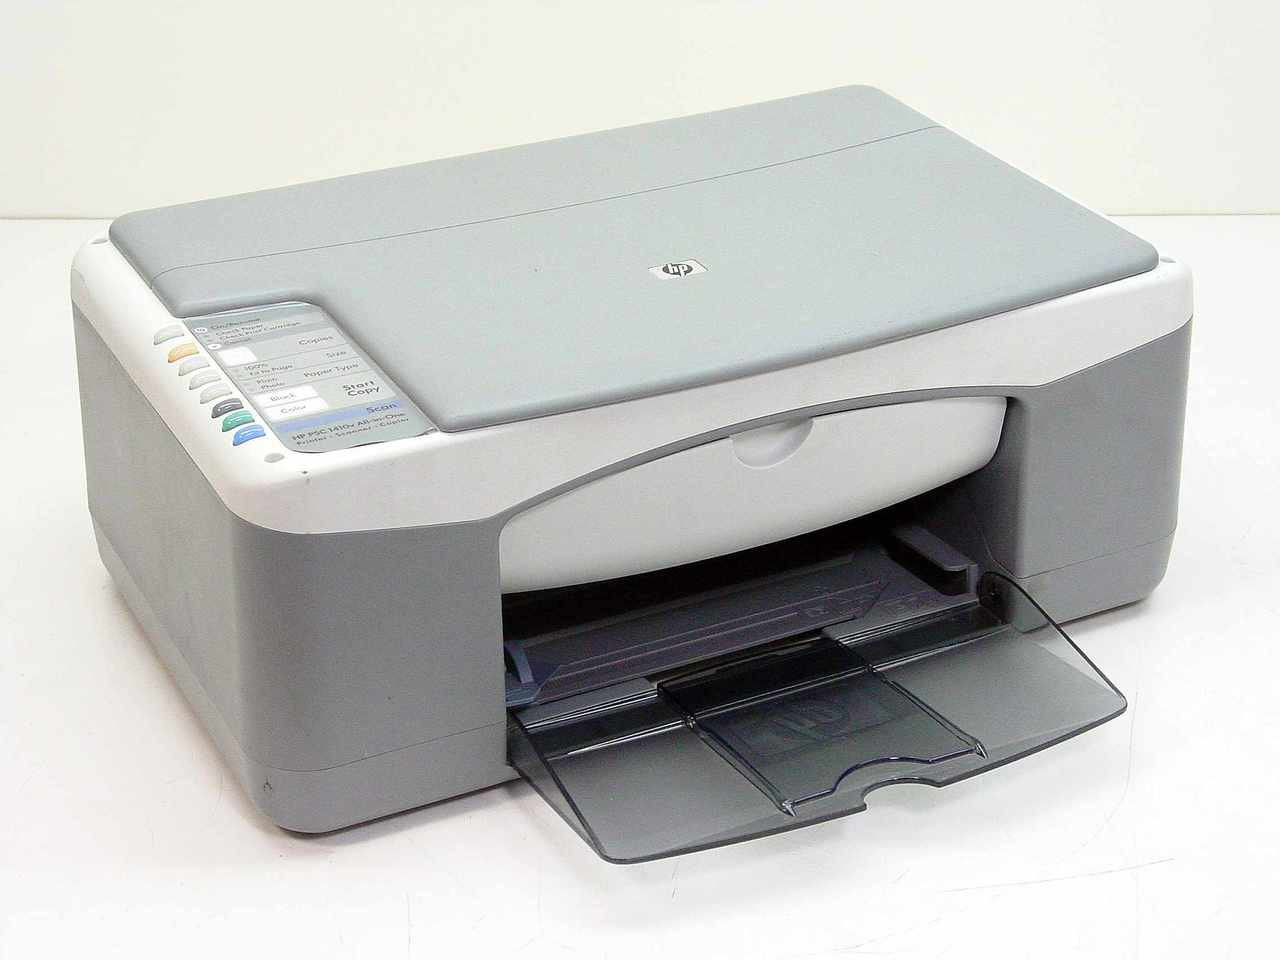 Related For HP PSC 1209 Series All-in-One Printer Driver Download